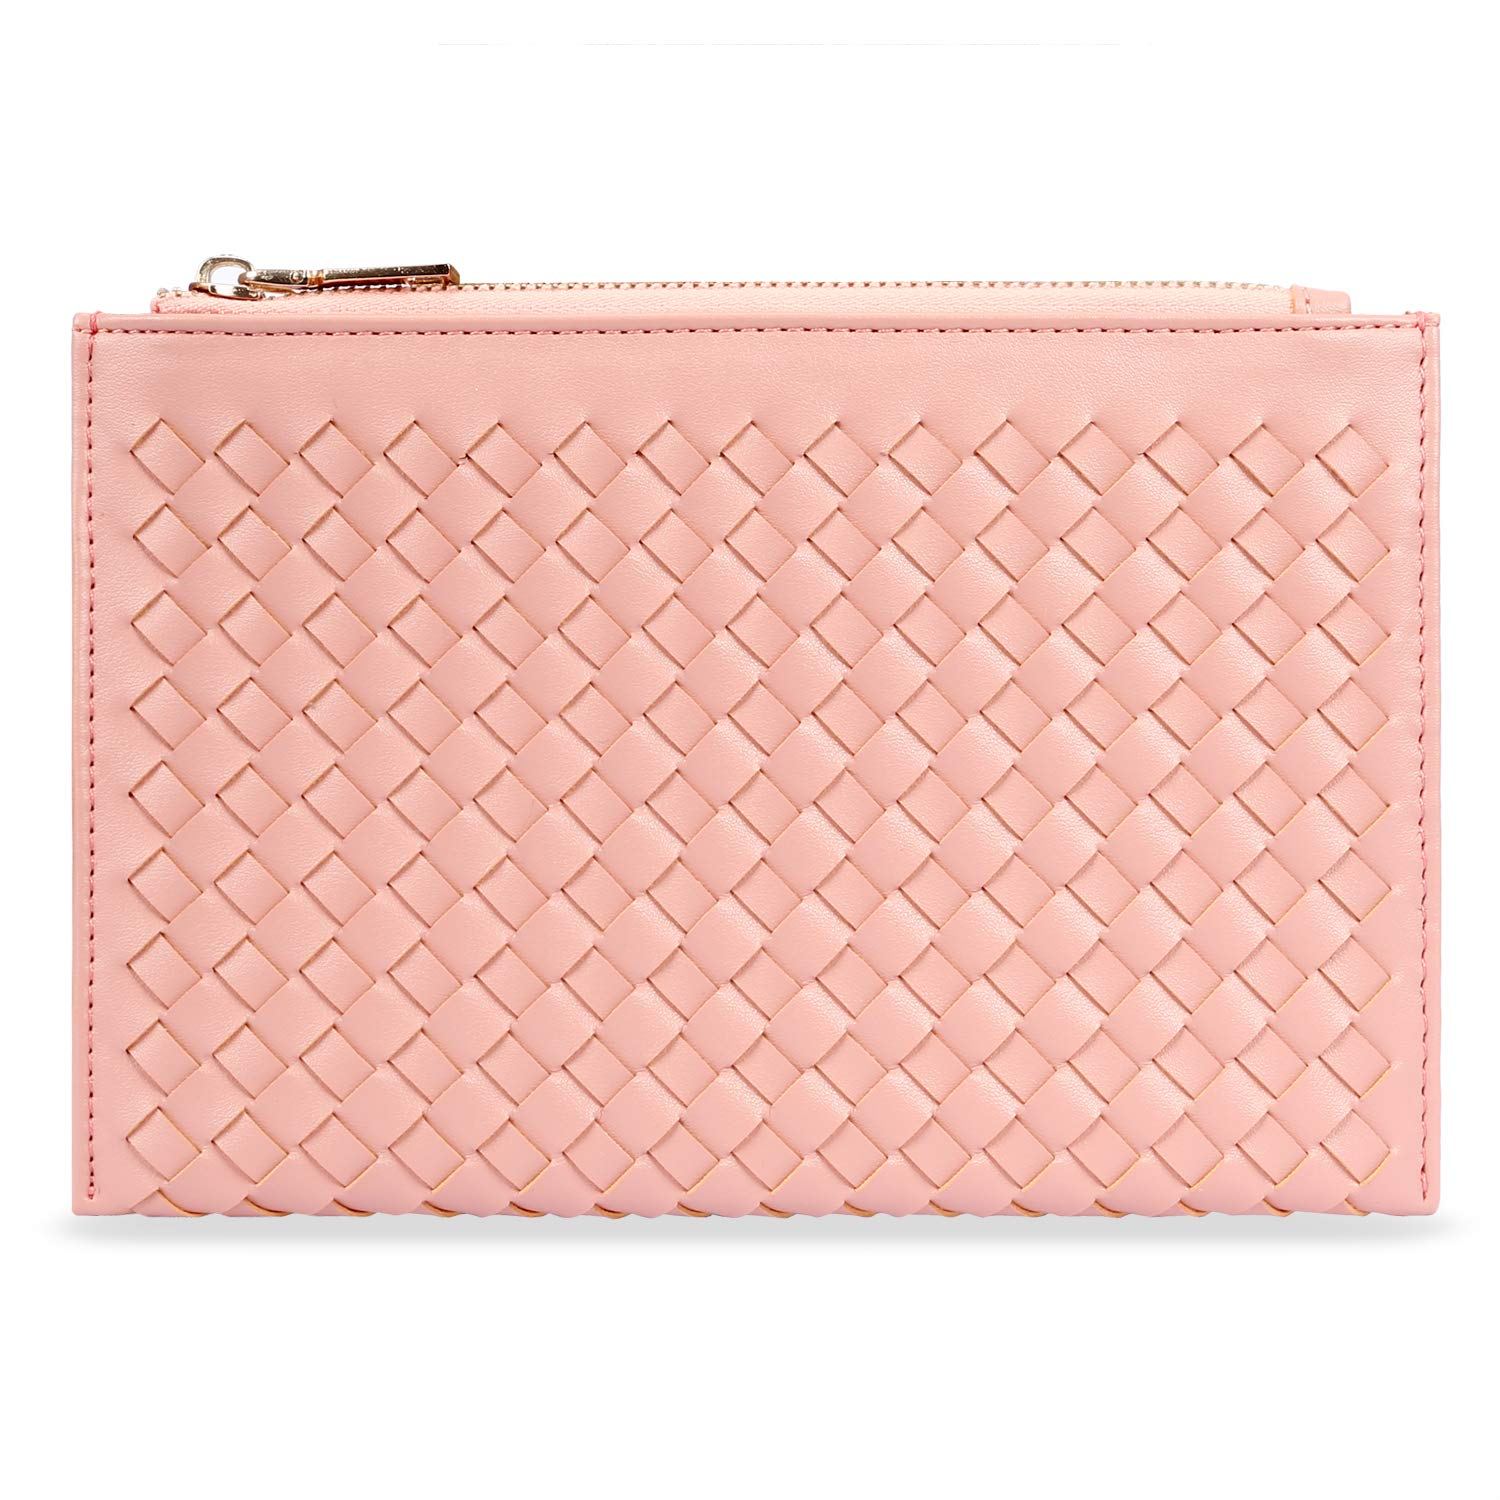 LOKASS Makeup Bag Slim Cosmetic Bag Cute Makeup Bags Hand-held Cosmetic Pouch for Women Cosmetics,Make Up Tools,Travel Rose Gold